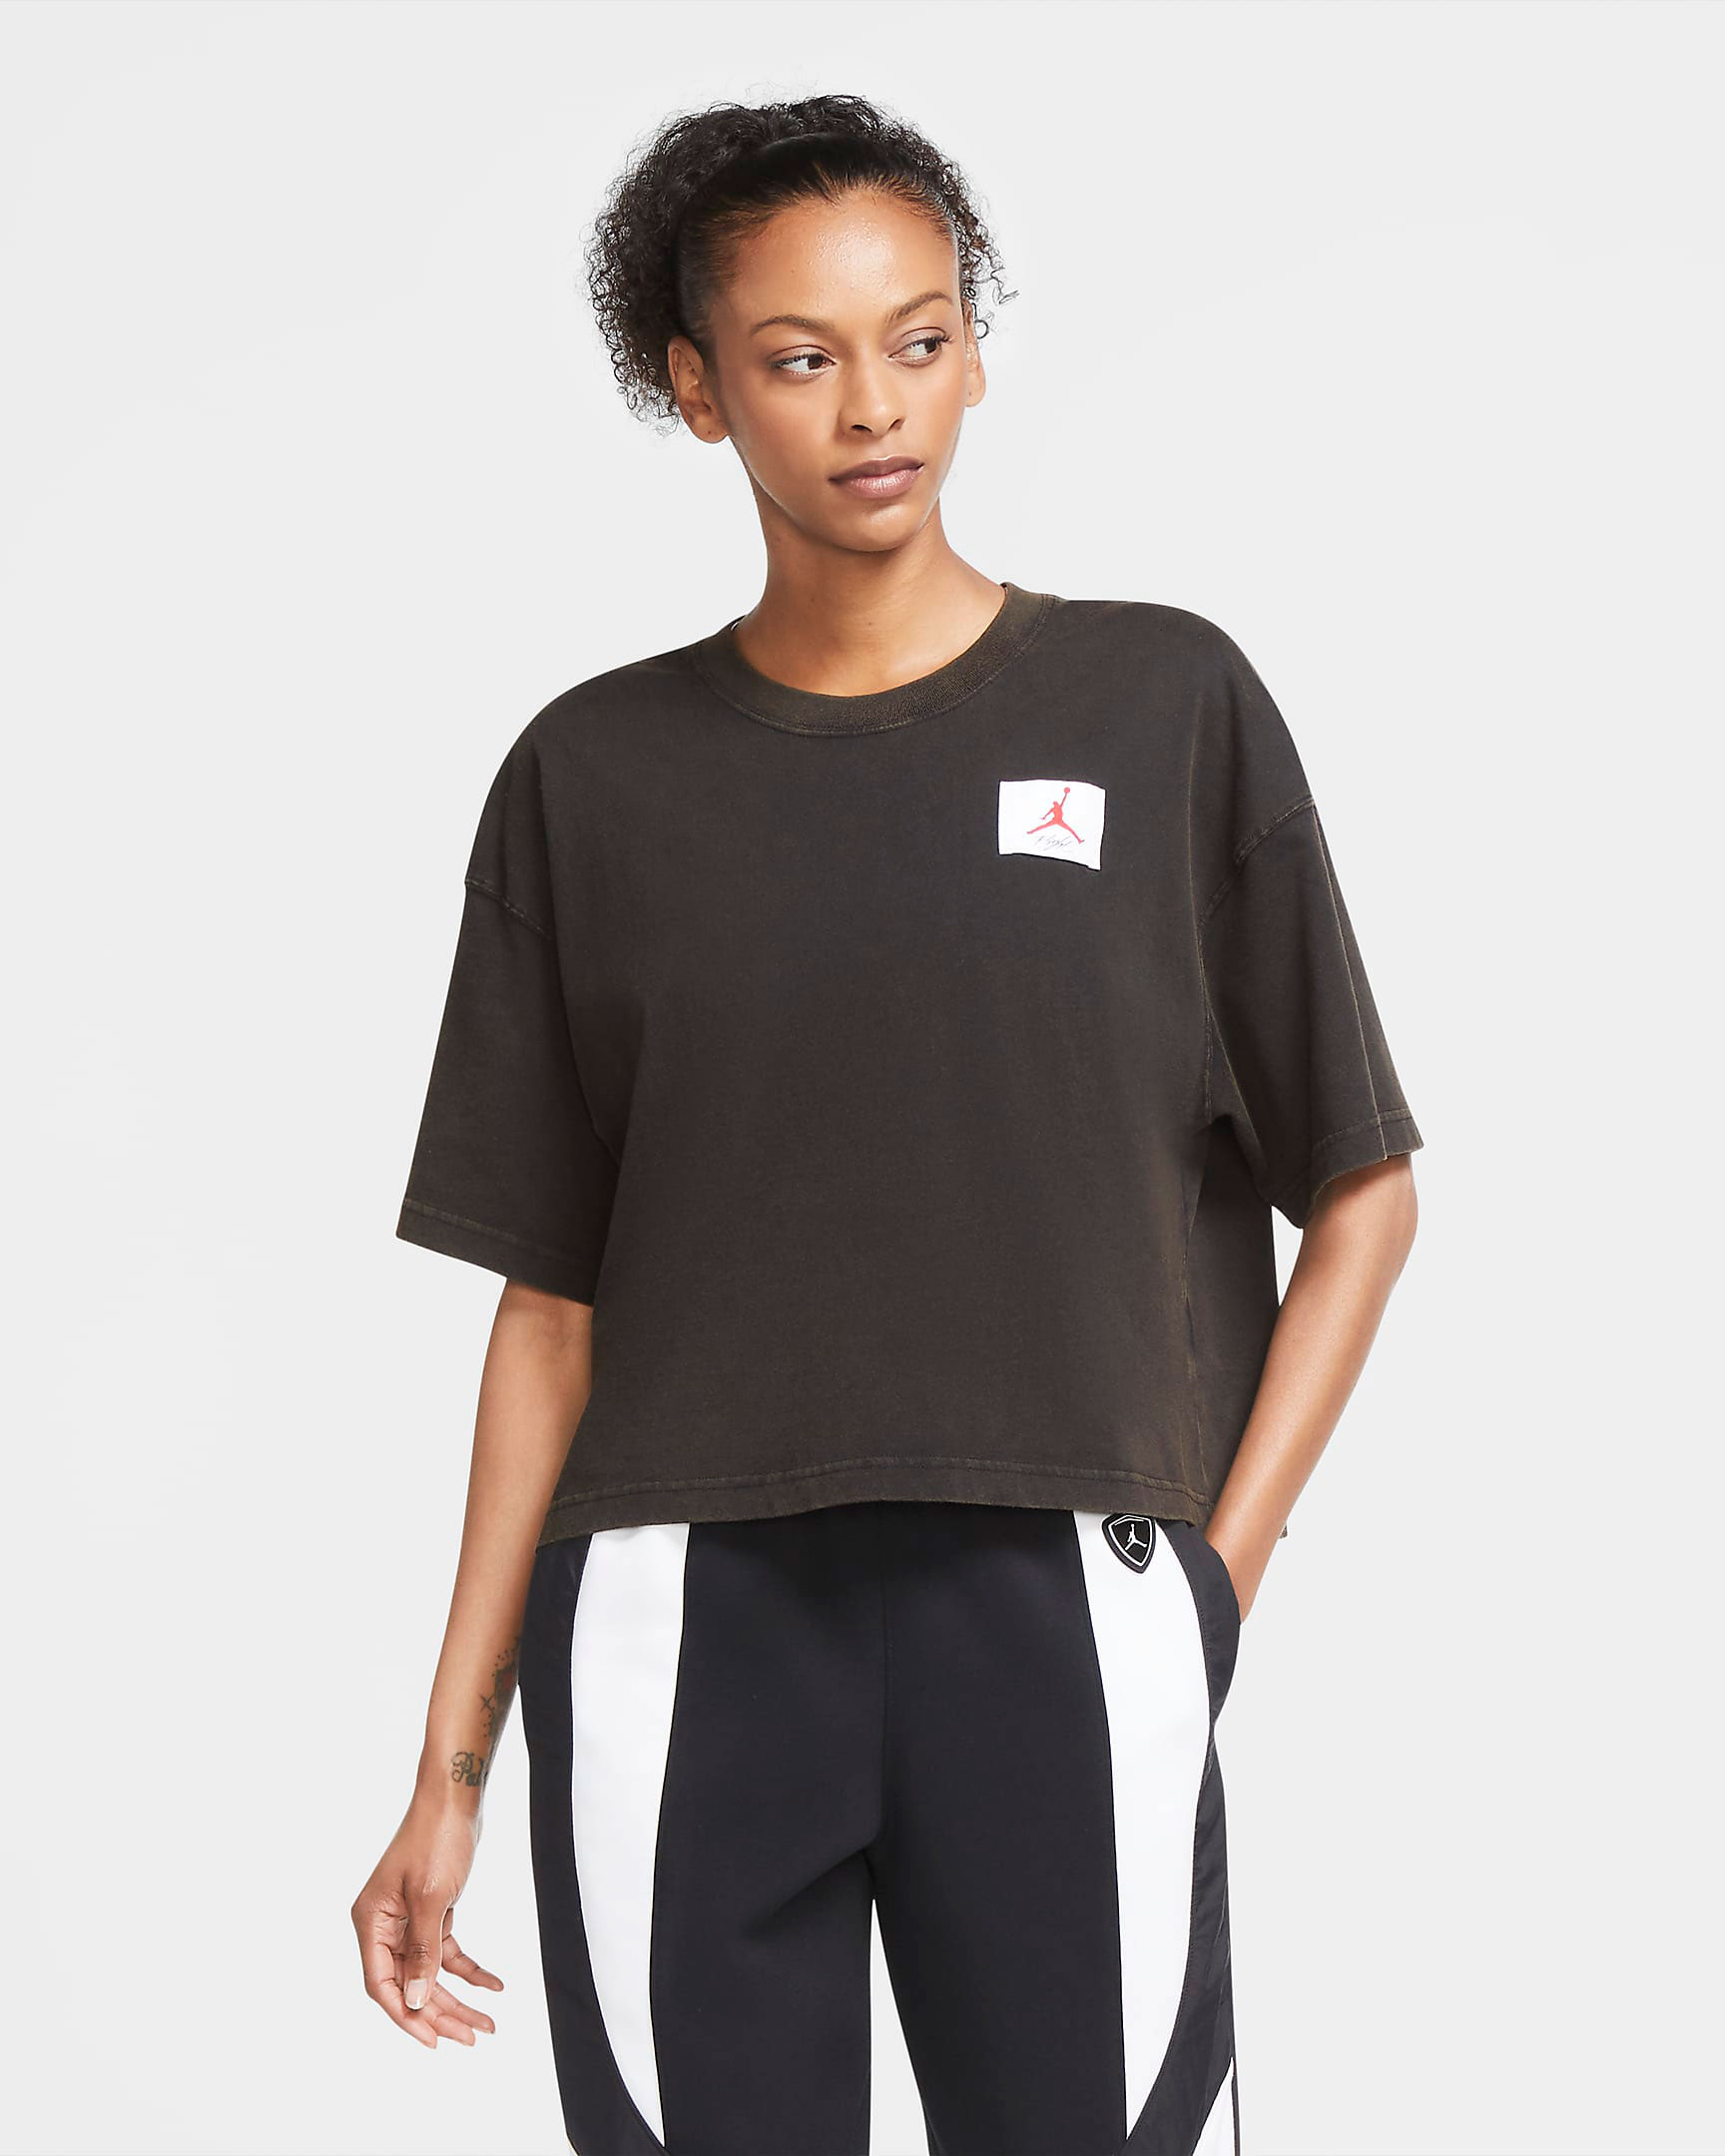 jordan-womens-wmns-black-shirt